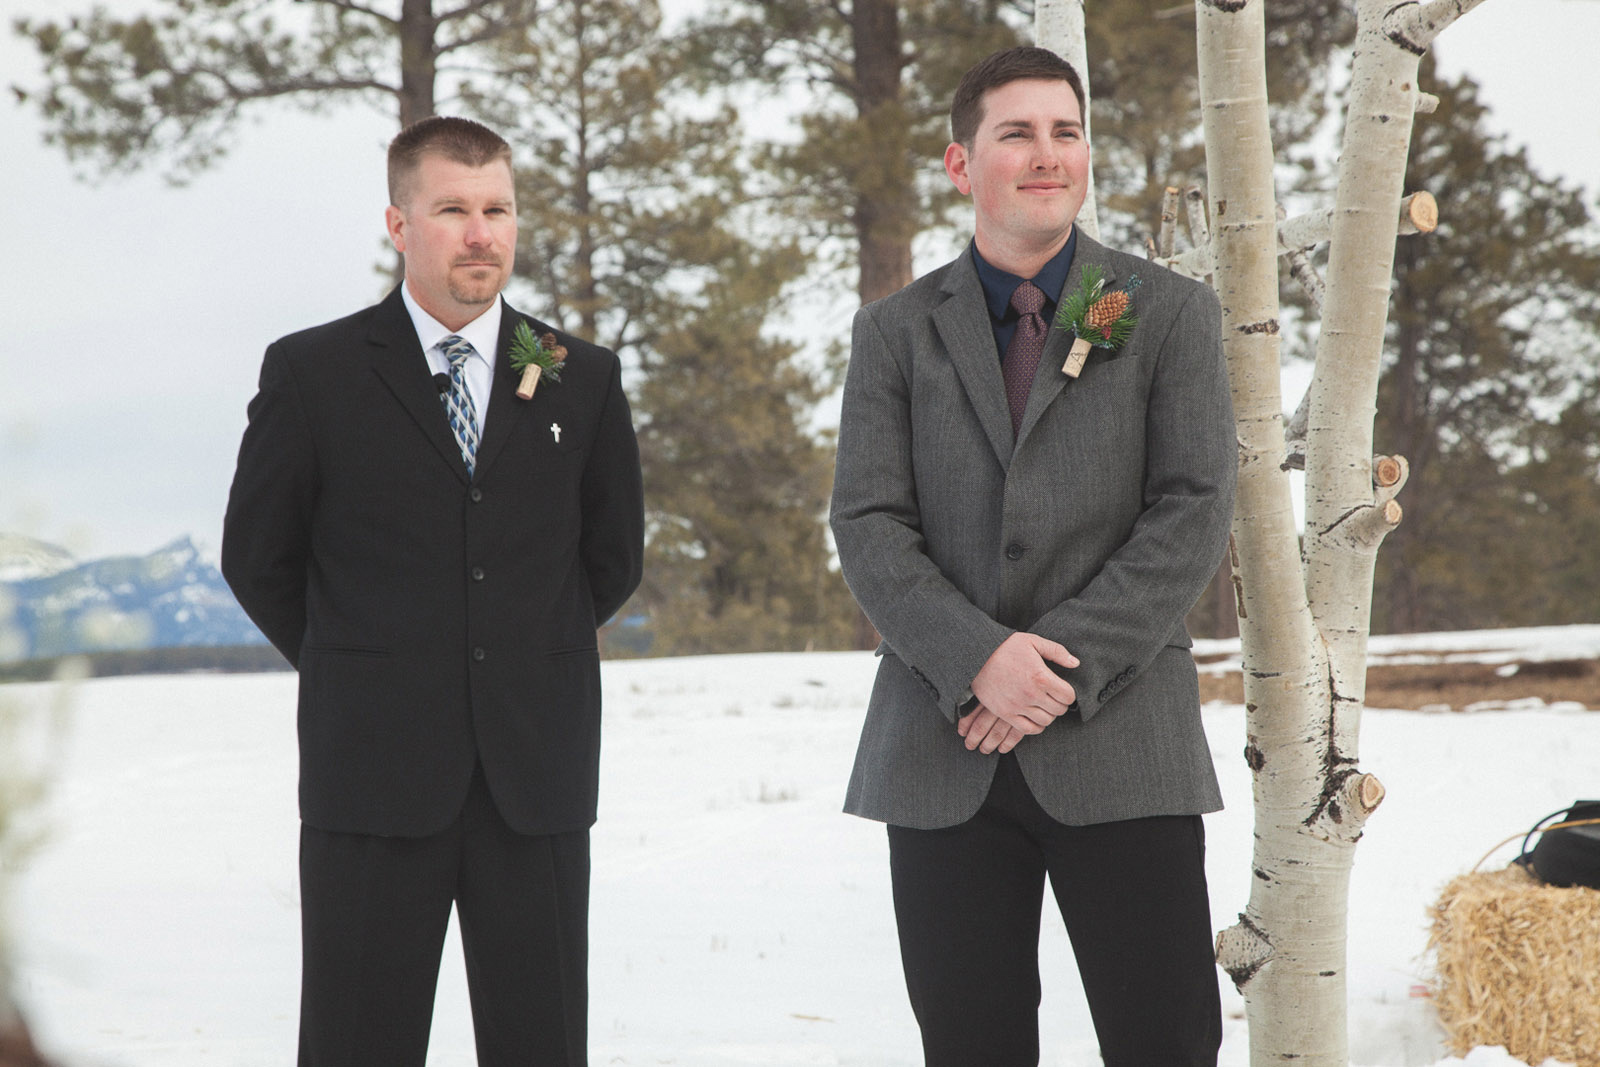 082-wedding-ceremony-in-pagosa-springs-wedding-photographer-snow-winter-wedding